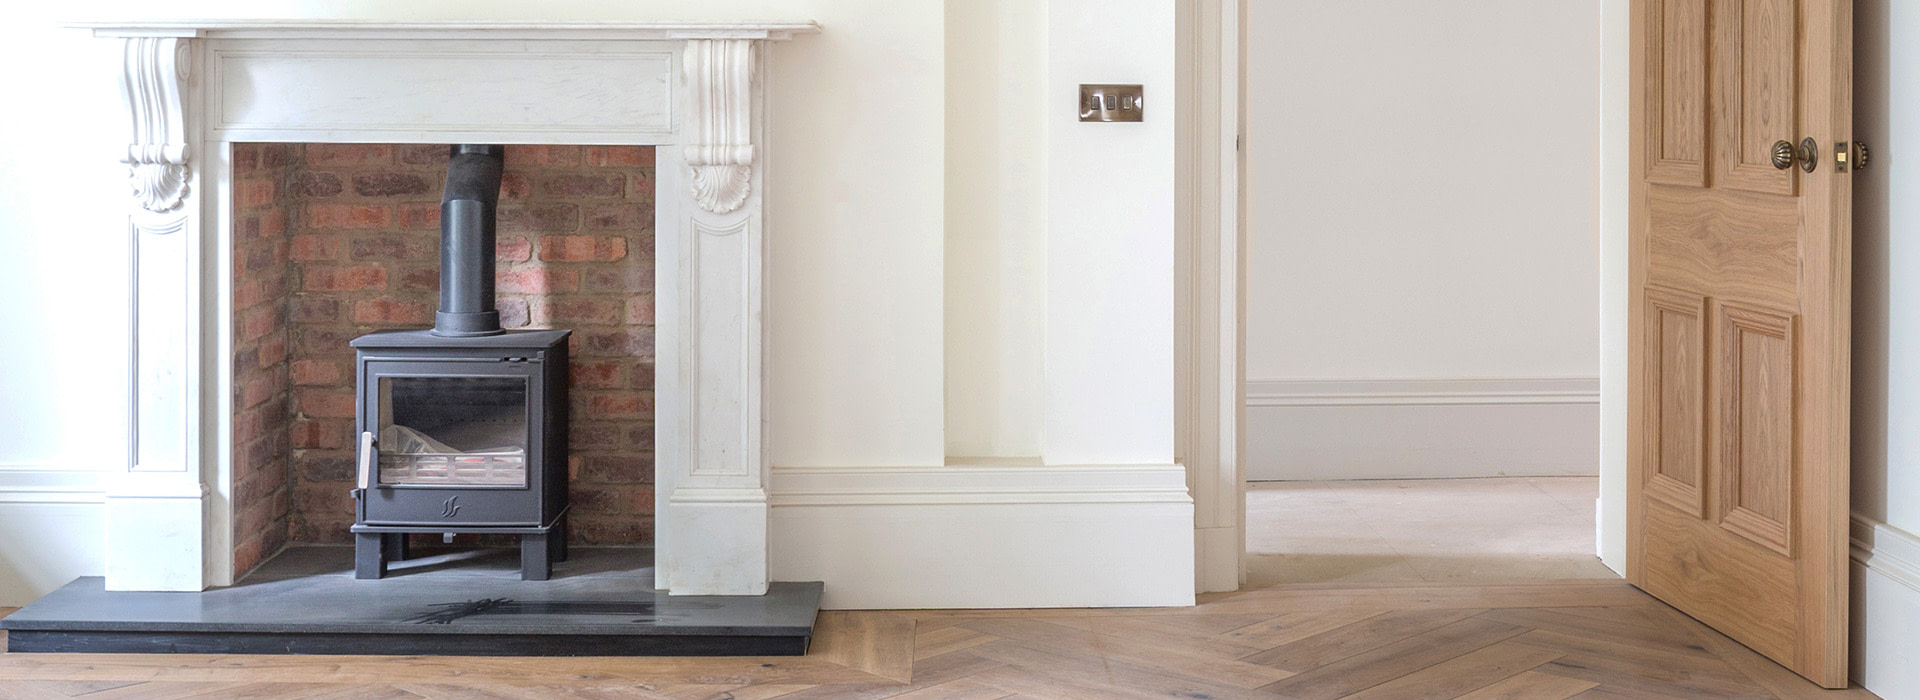 Log burning stove in a traditional home